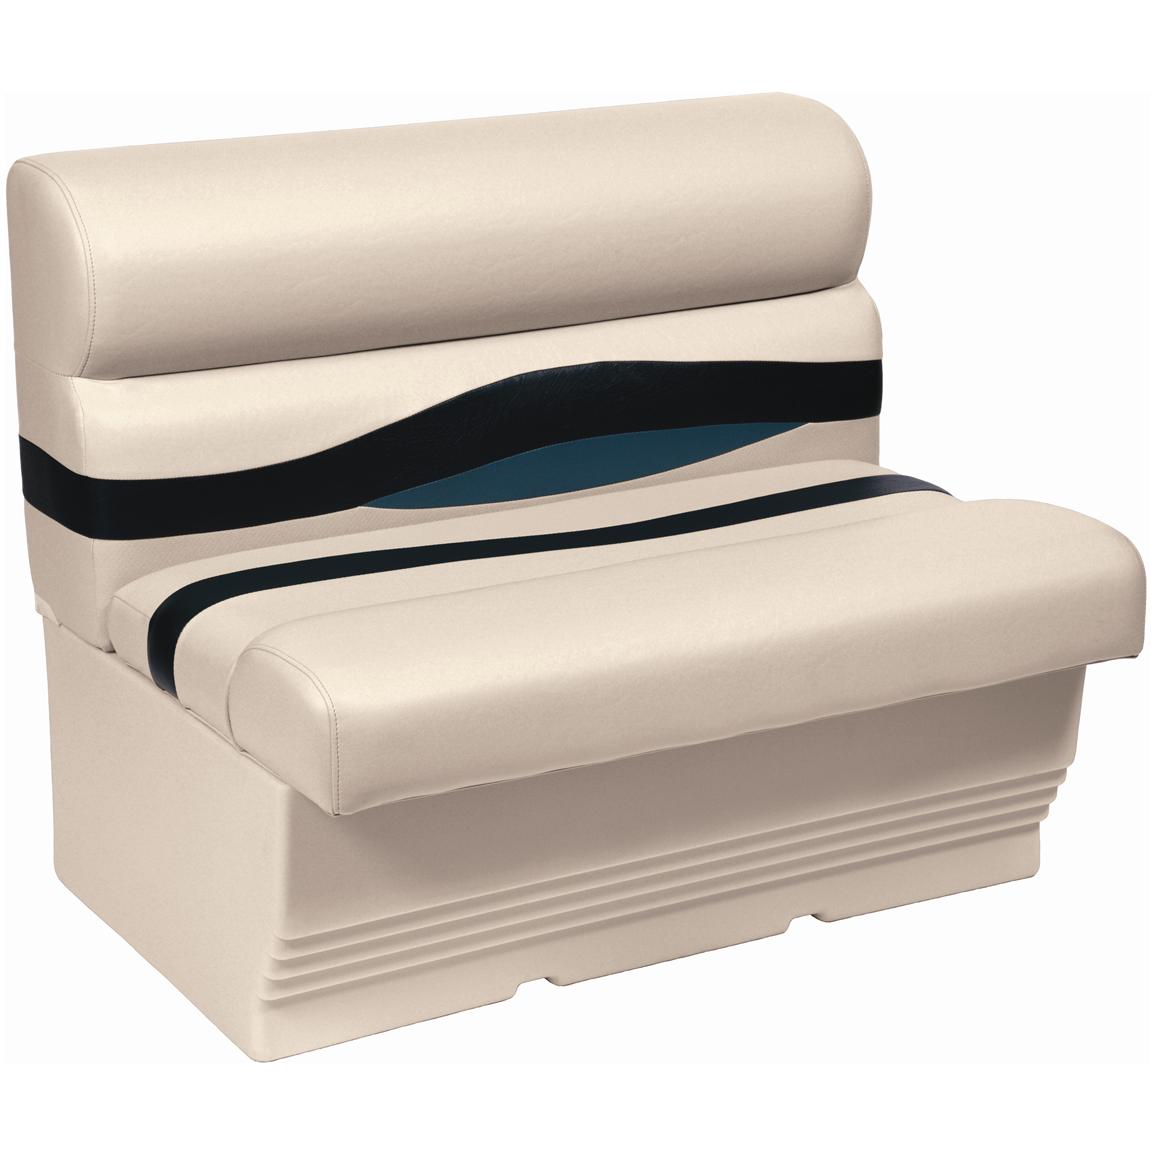 "Wise Premier® 45"" Pontoon Bench Seat, Color A - Platinum Punch / Navy / Cobalt"